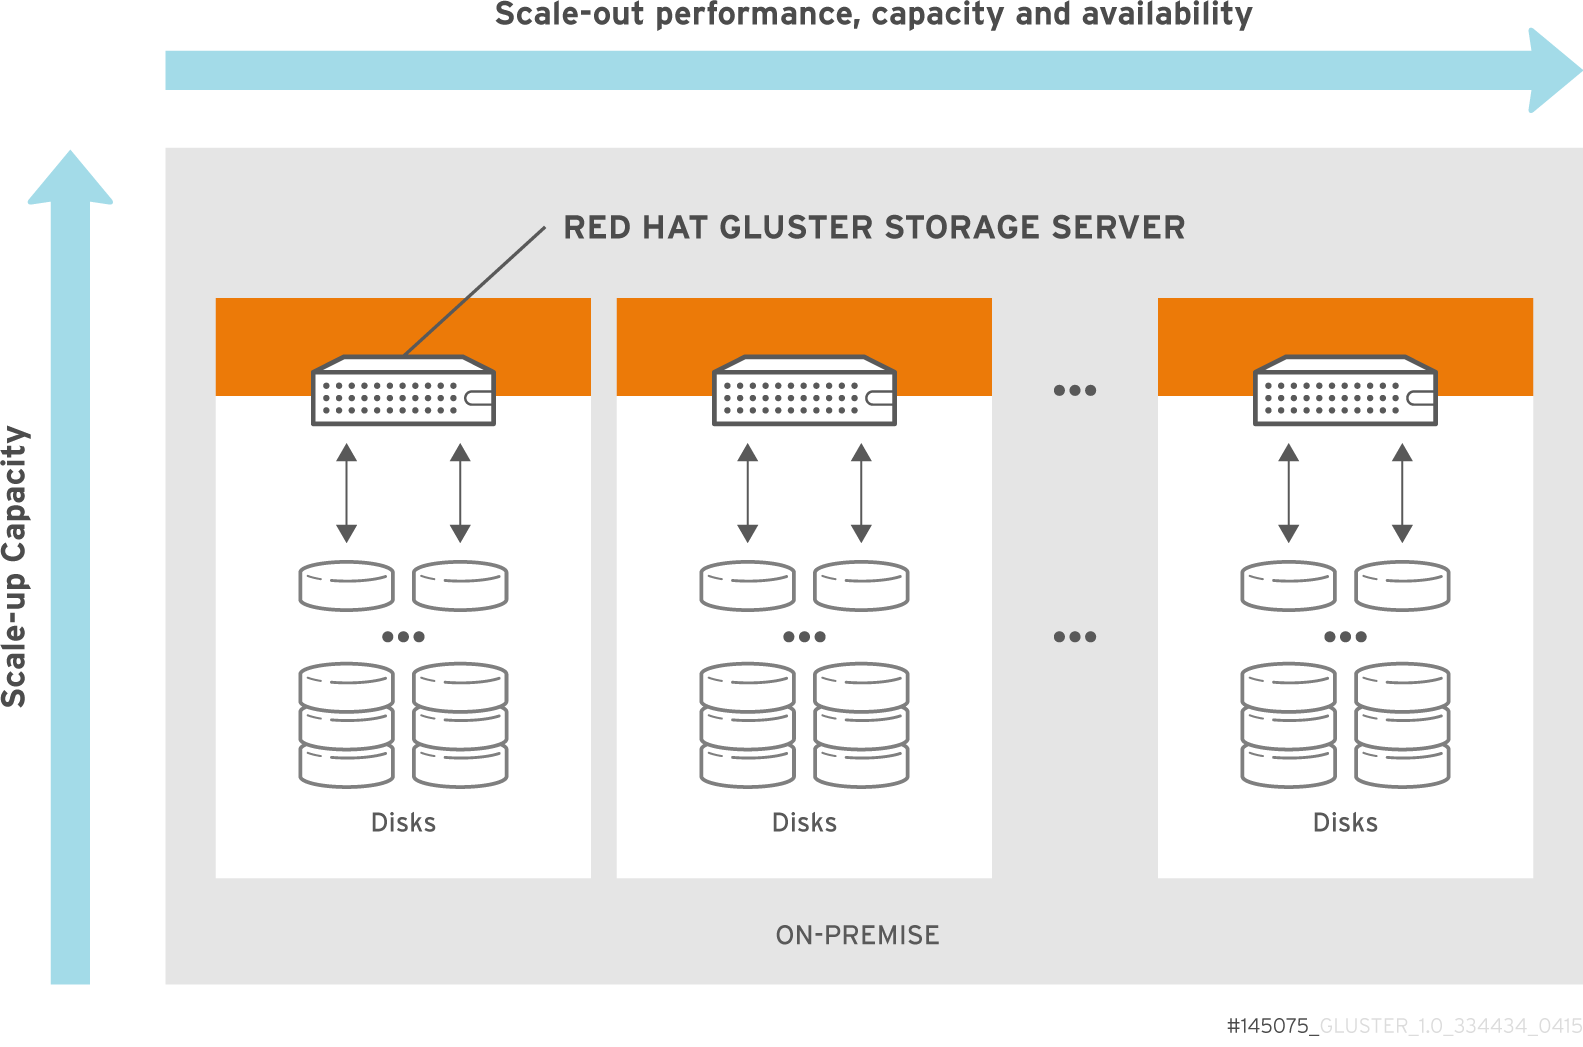 Red Hat Gluster Storage for On-premises Architecture